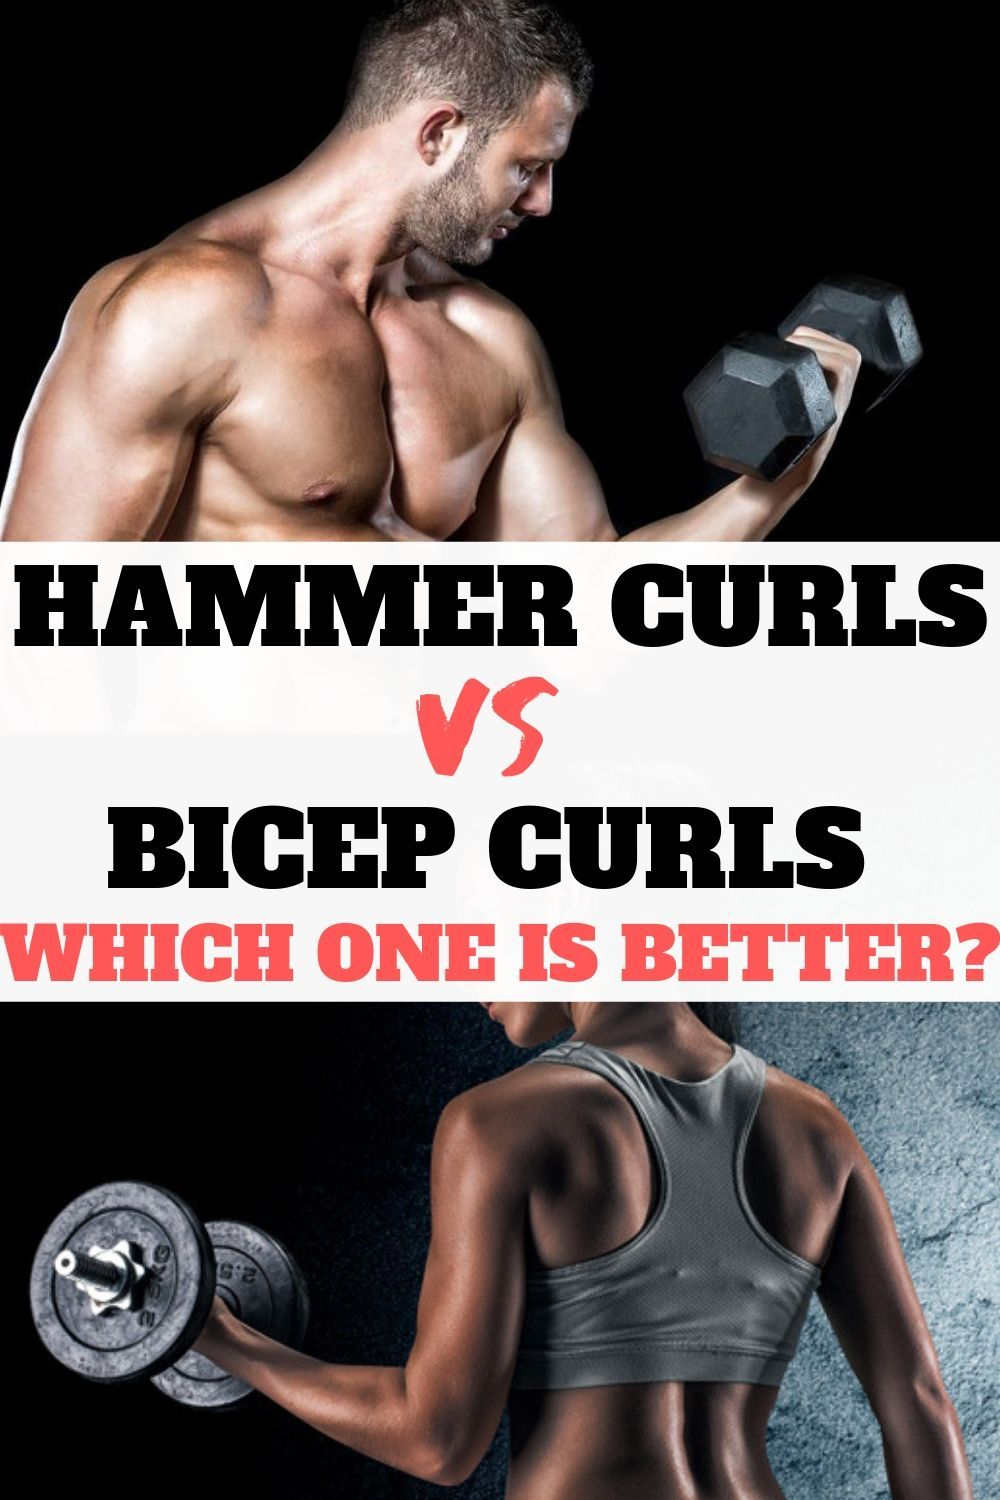 Hammer Curls and Bicep Curls exercises are very effective in building your arms and increasing your...